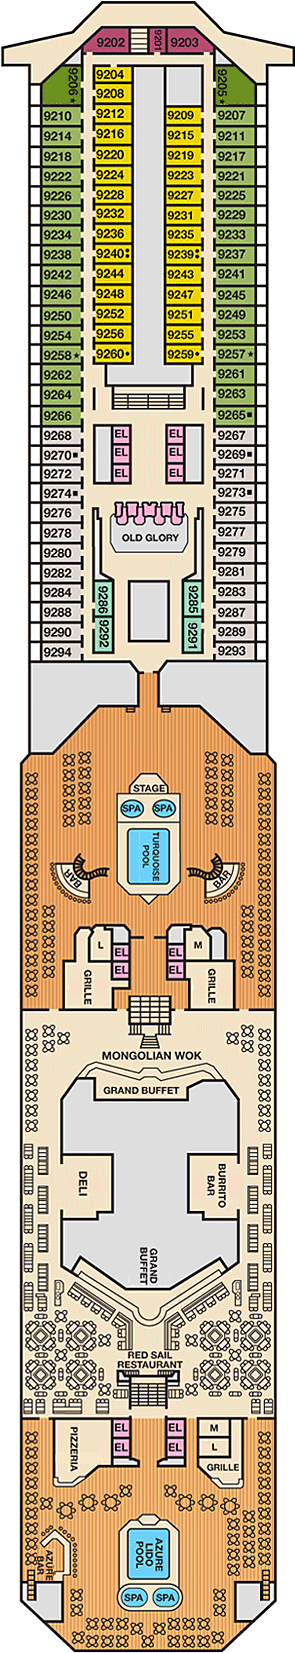 Carnival Glory Deck Map on